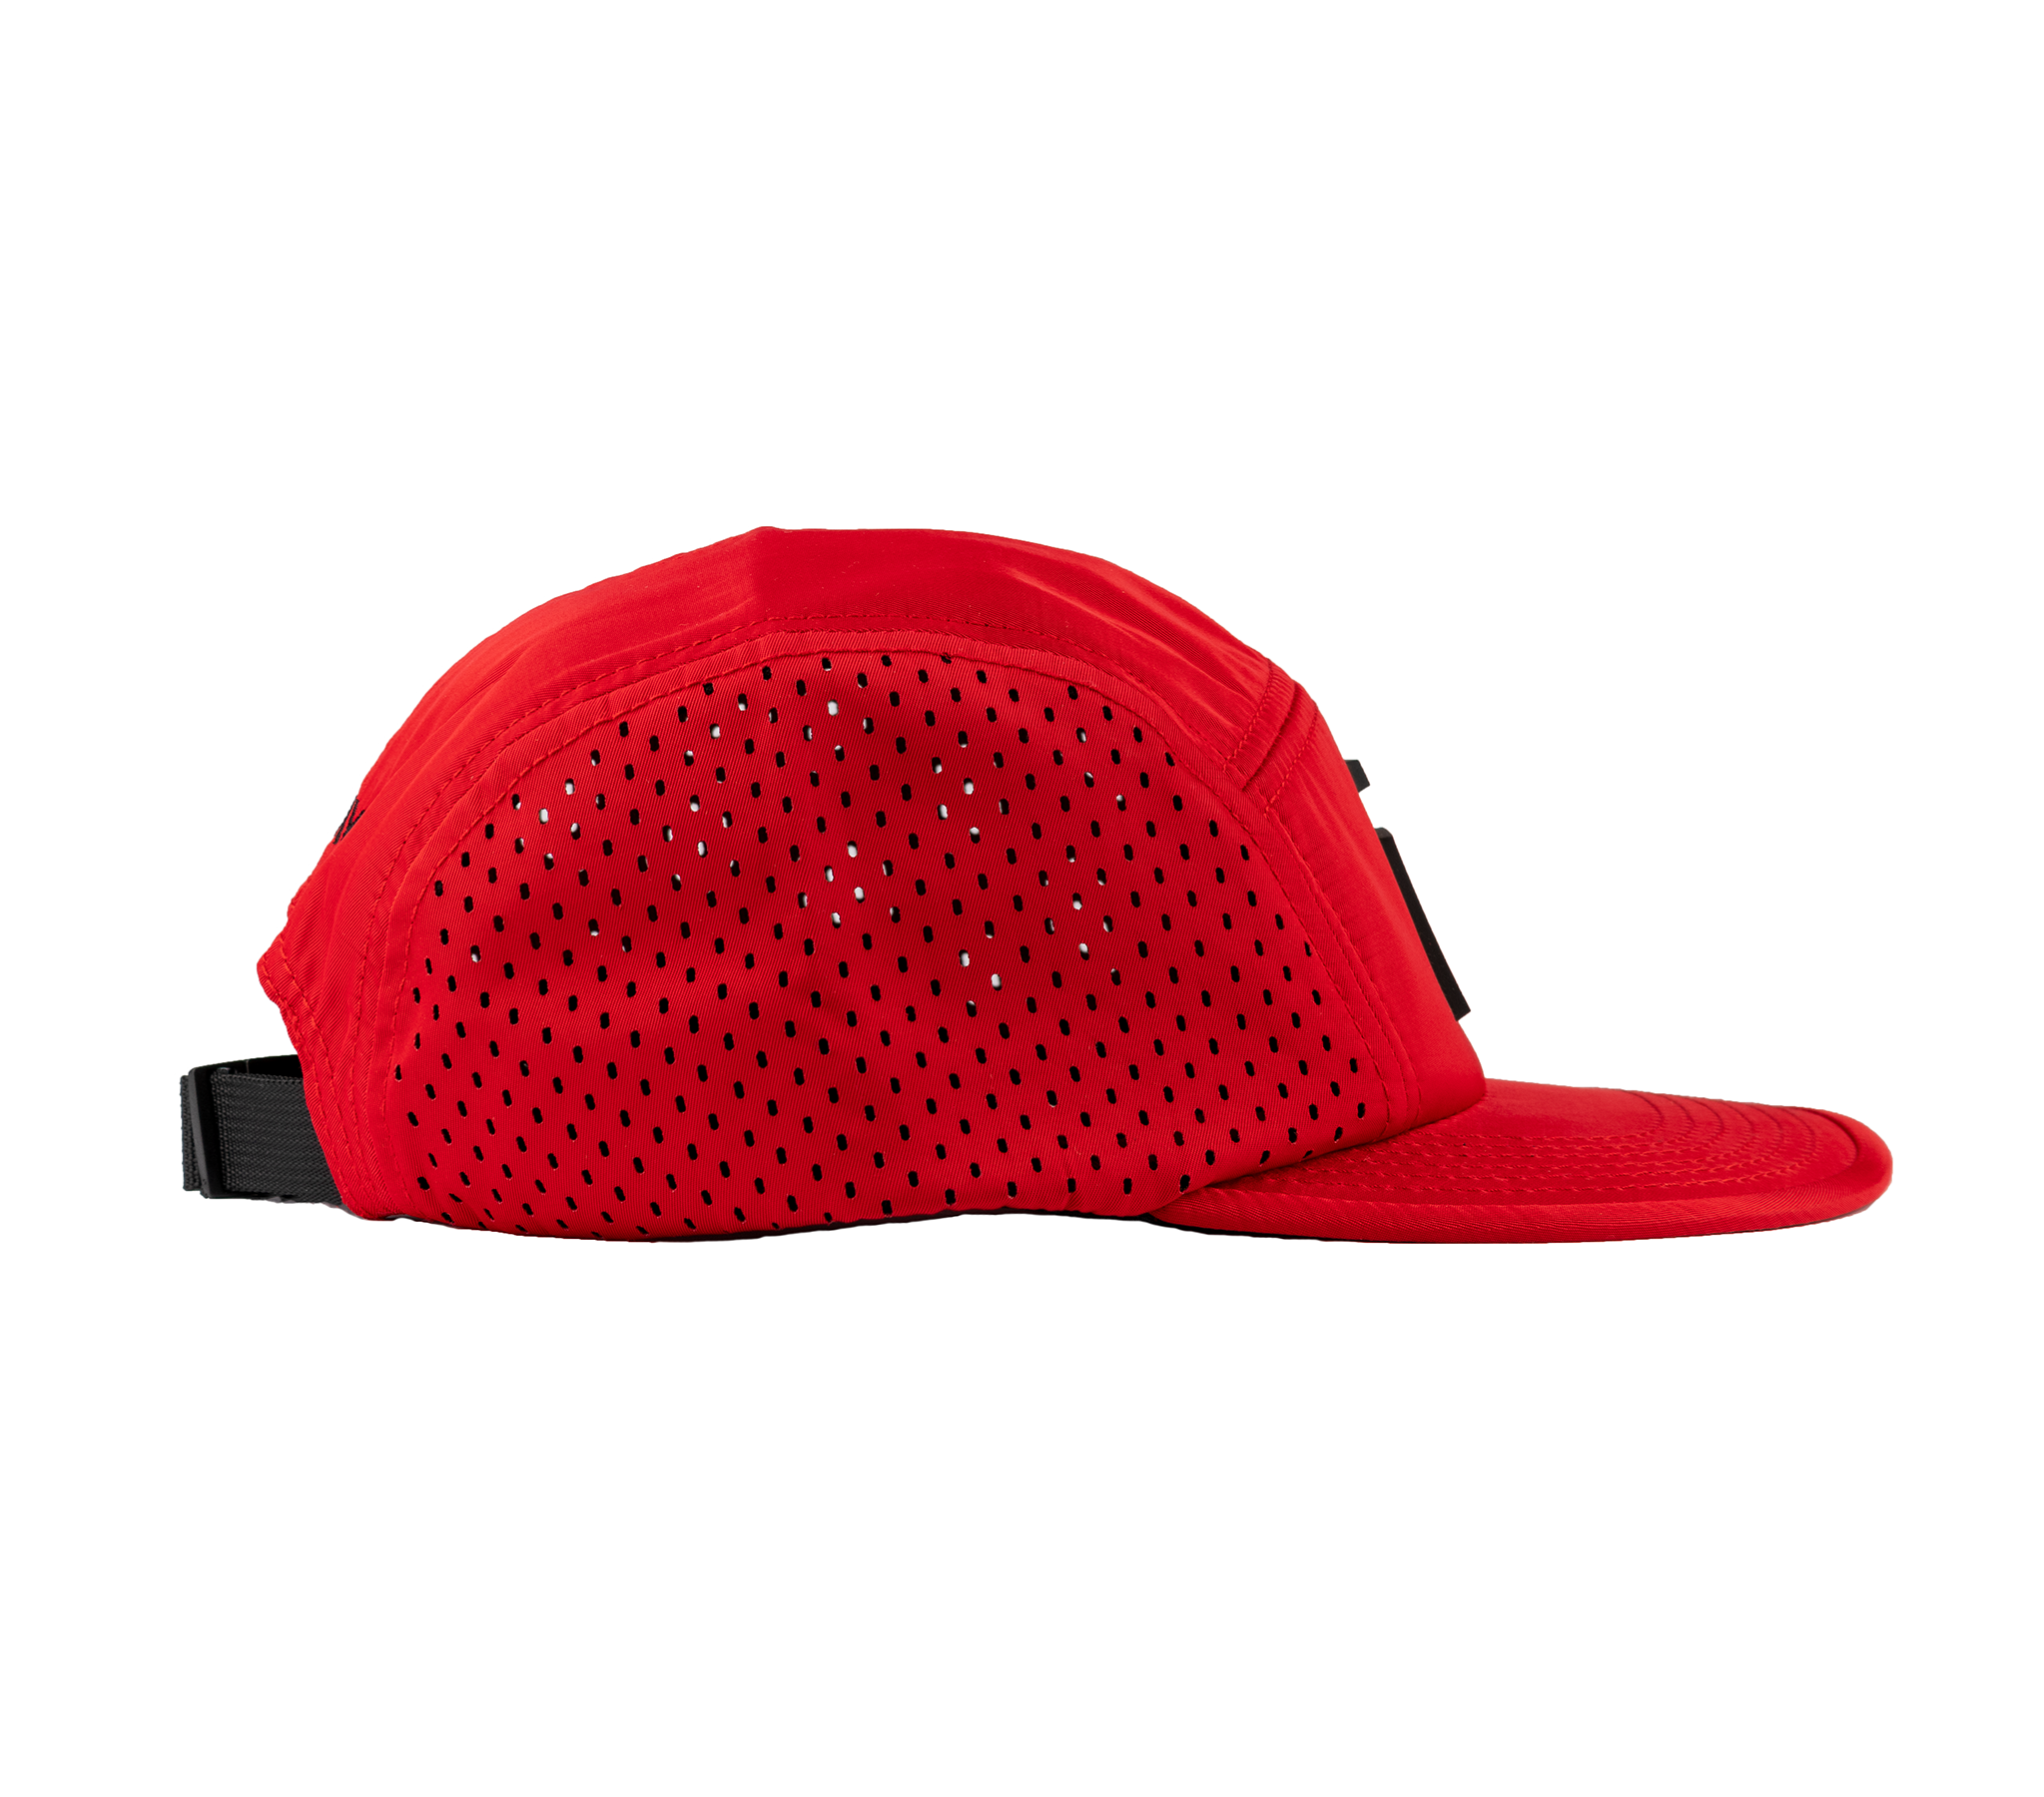 Aptayn Velox Red Cursa Edition Running Cap